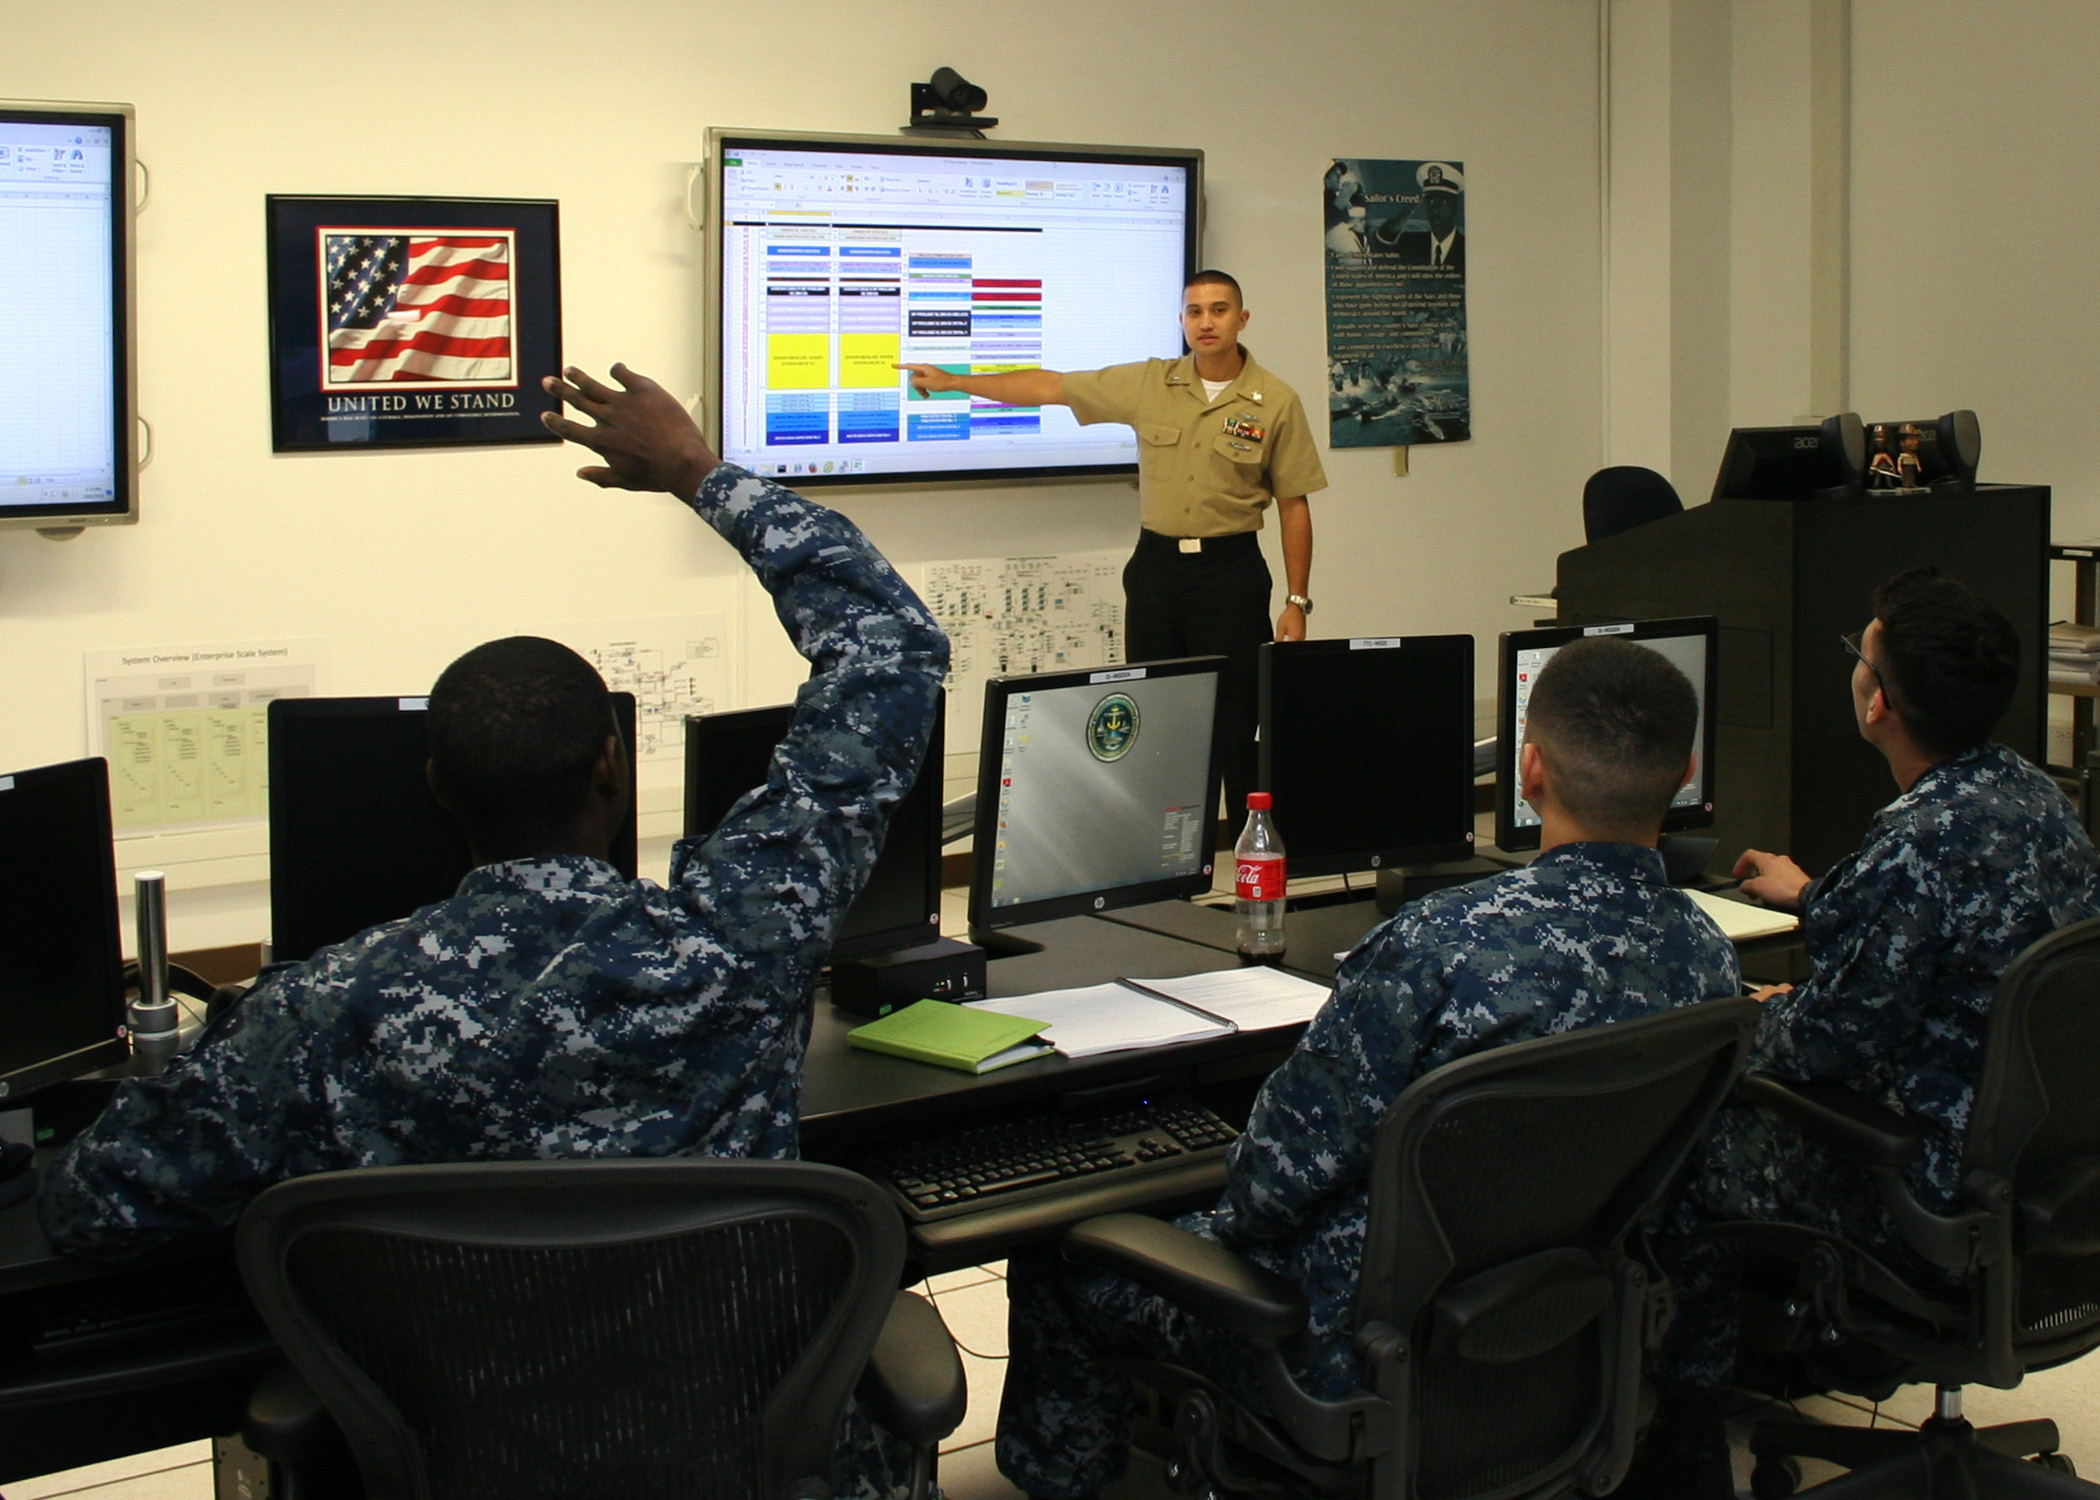 Navy Instructor Afloat Program.  Source: http://www.doncio.navy.mil/CHIPS/ArticleDetails.aspx?ID=8475